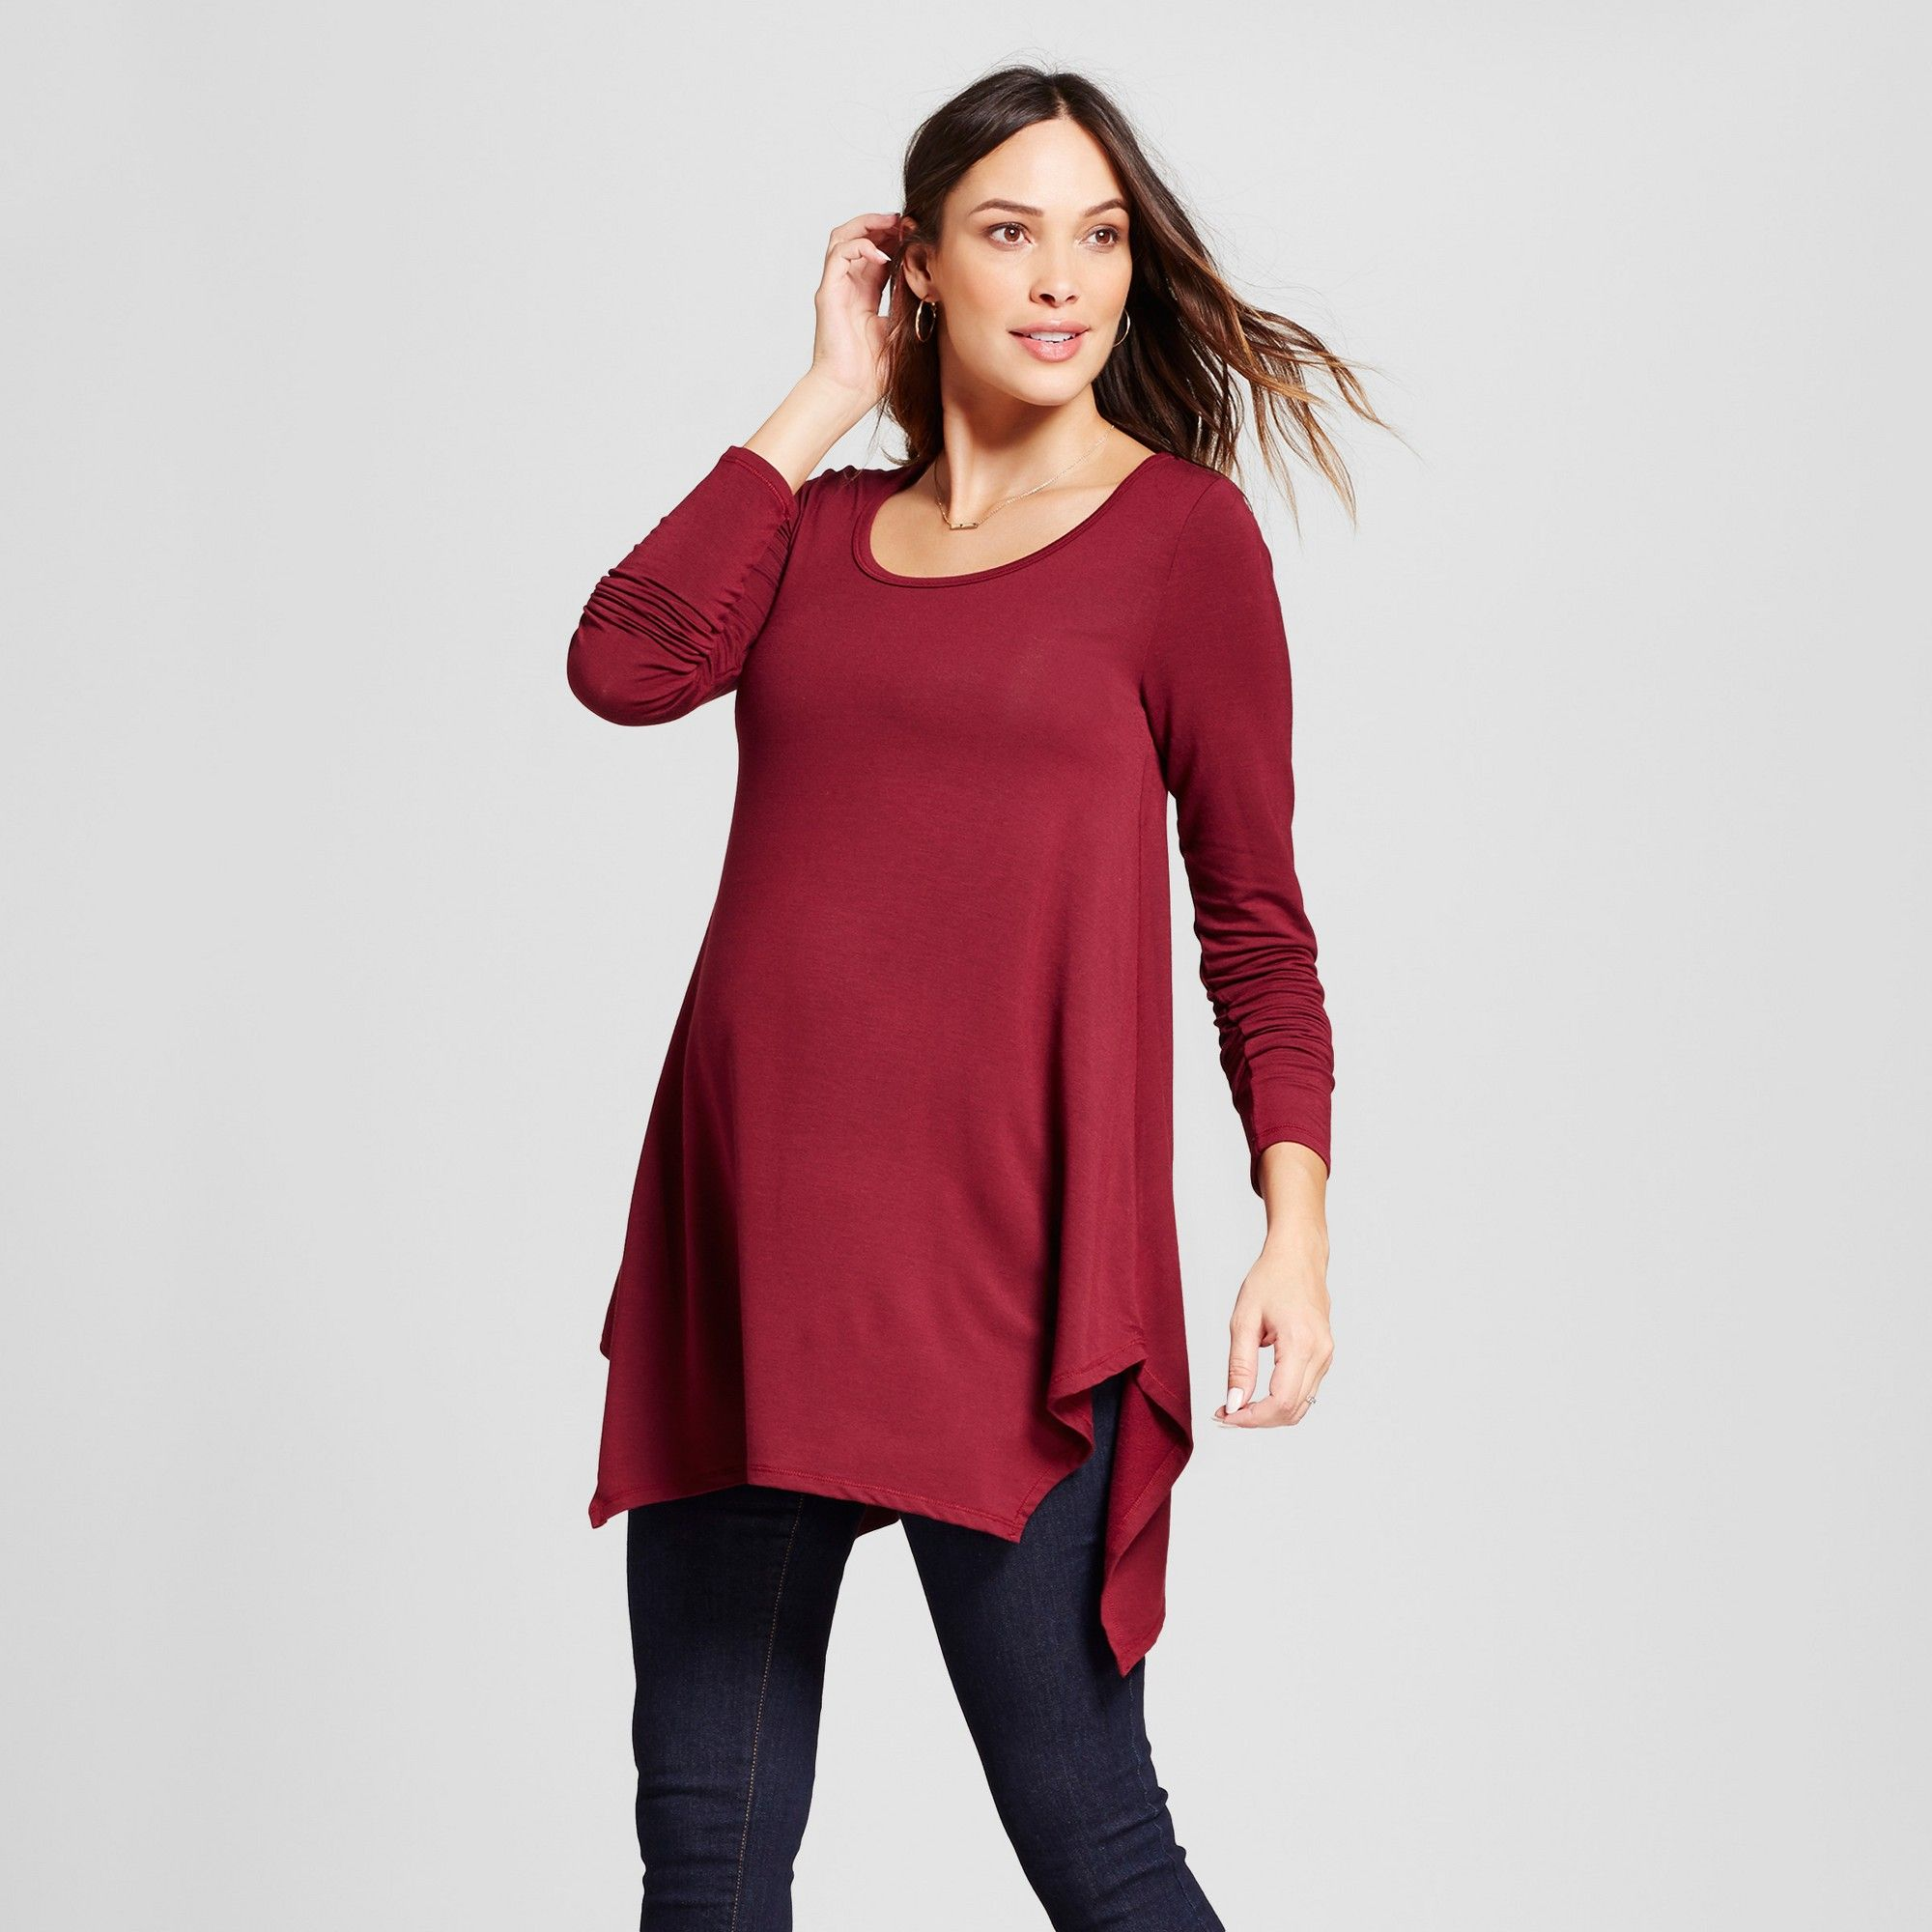 55eef9463d267e Maternity Long Sleeve Handkerchief Tunic - Isabel Maternity by Ingrid    Isabel Boysenberry Red XL